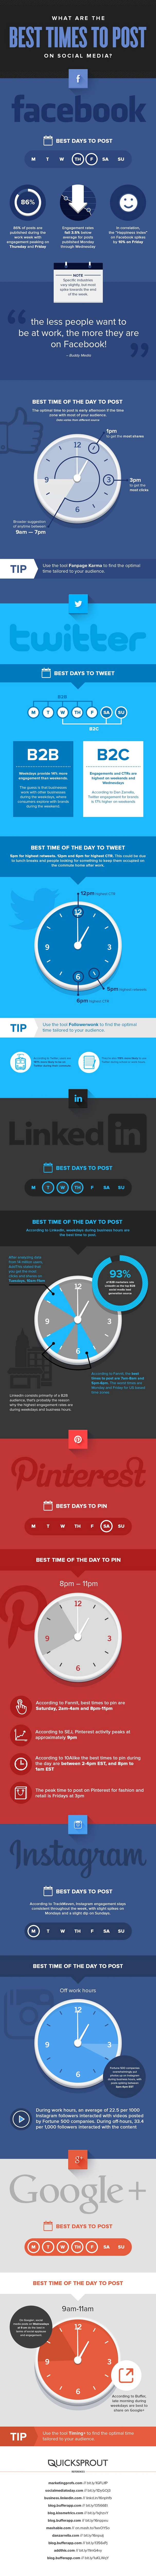 What are the Best Times to Post on Social Media? Infographic